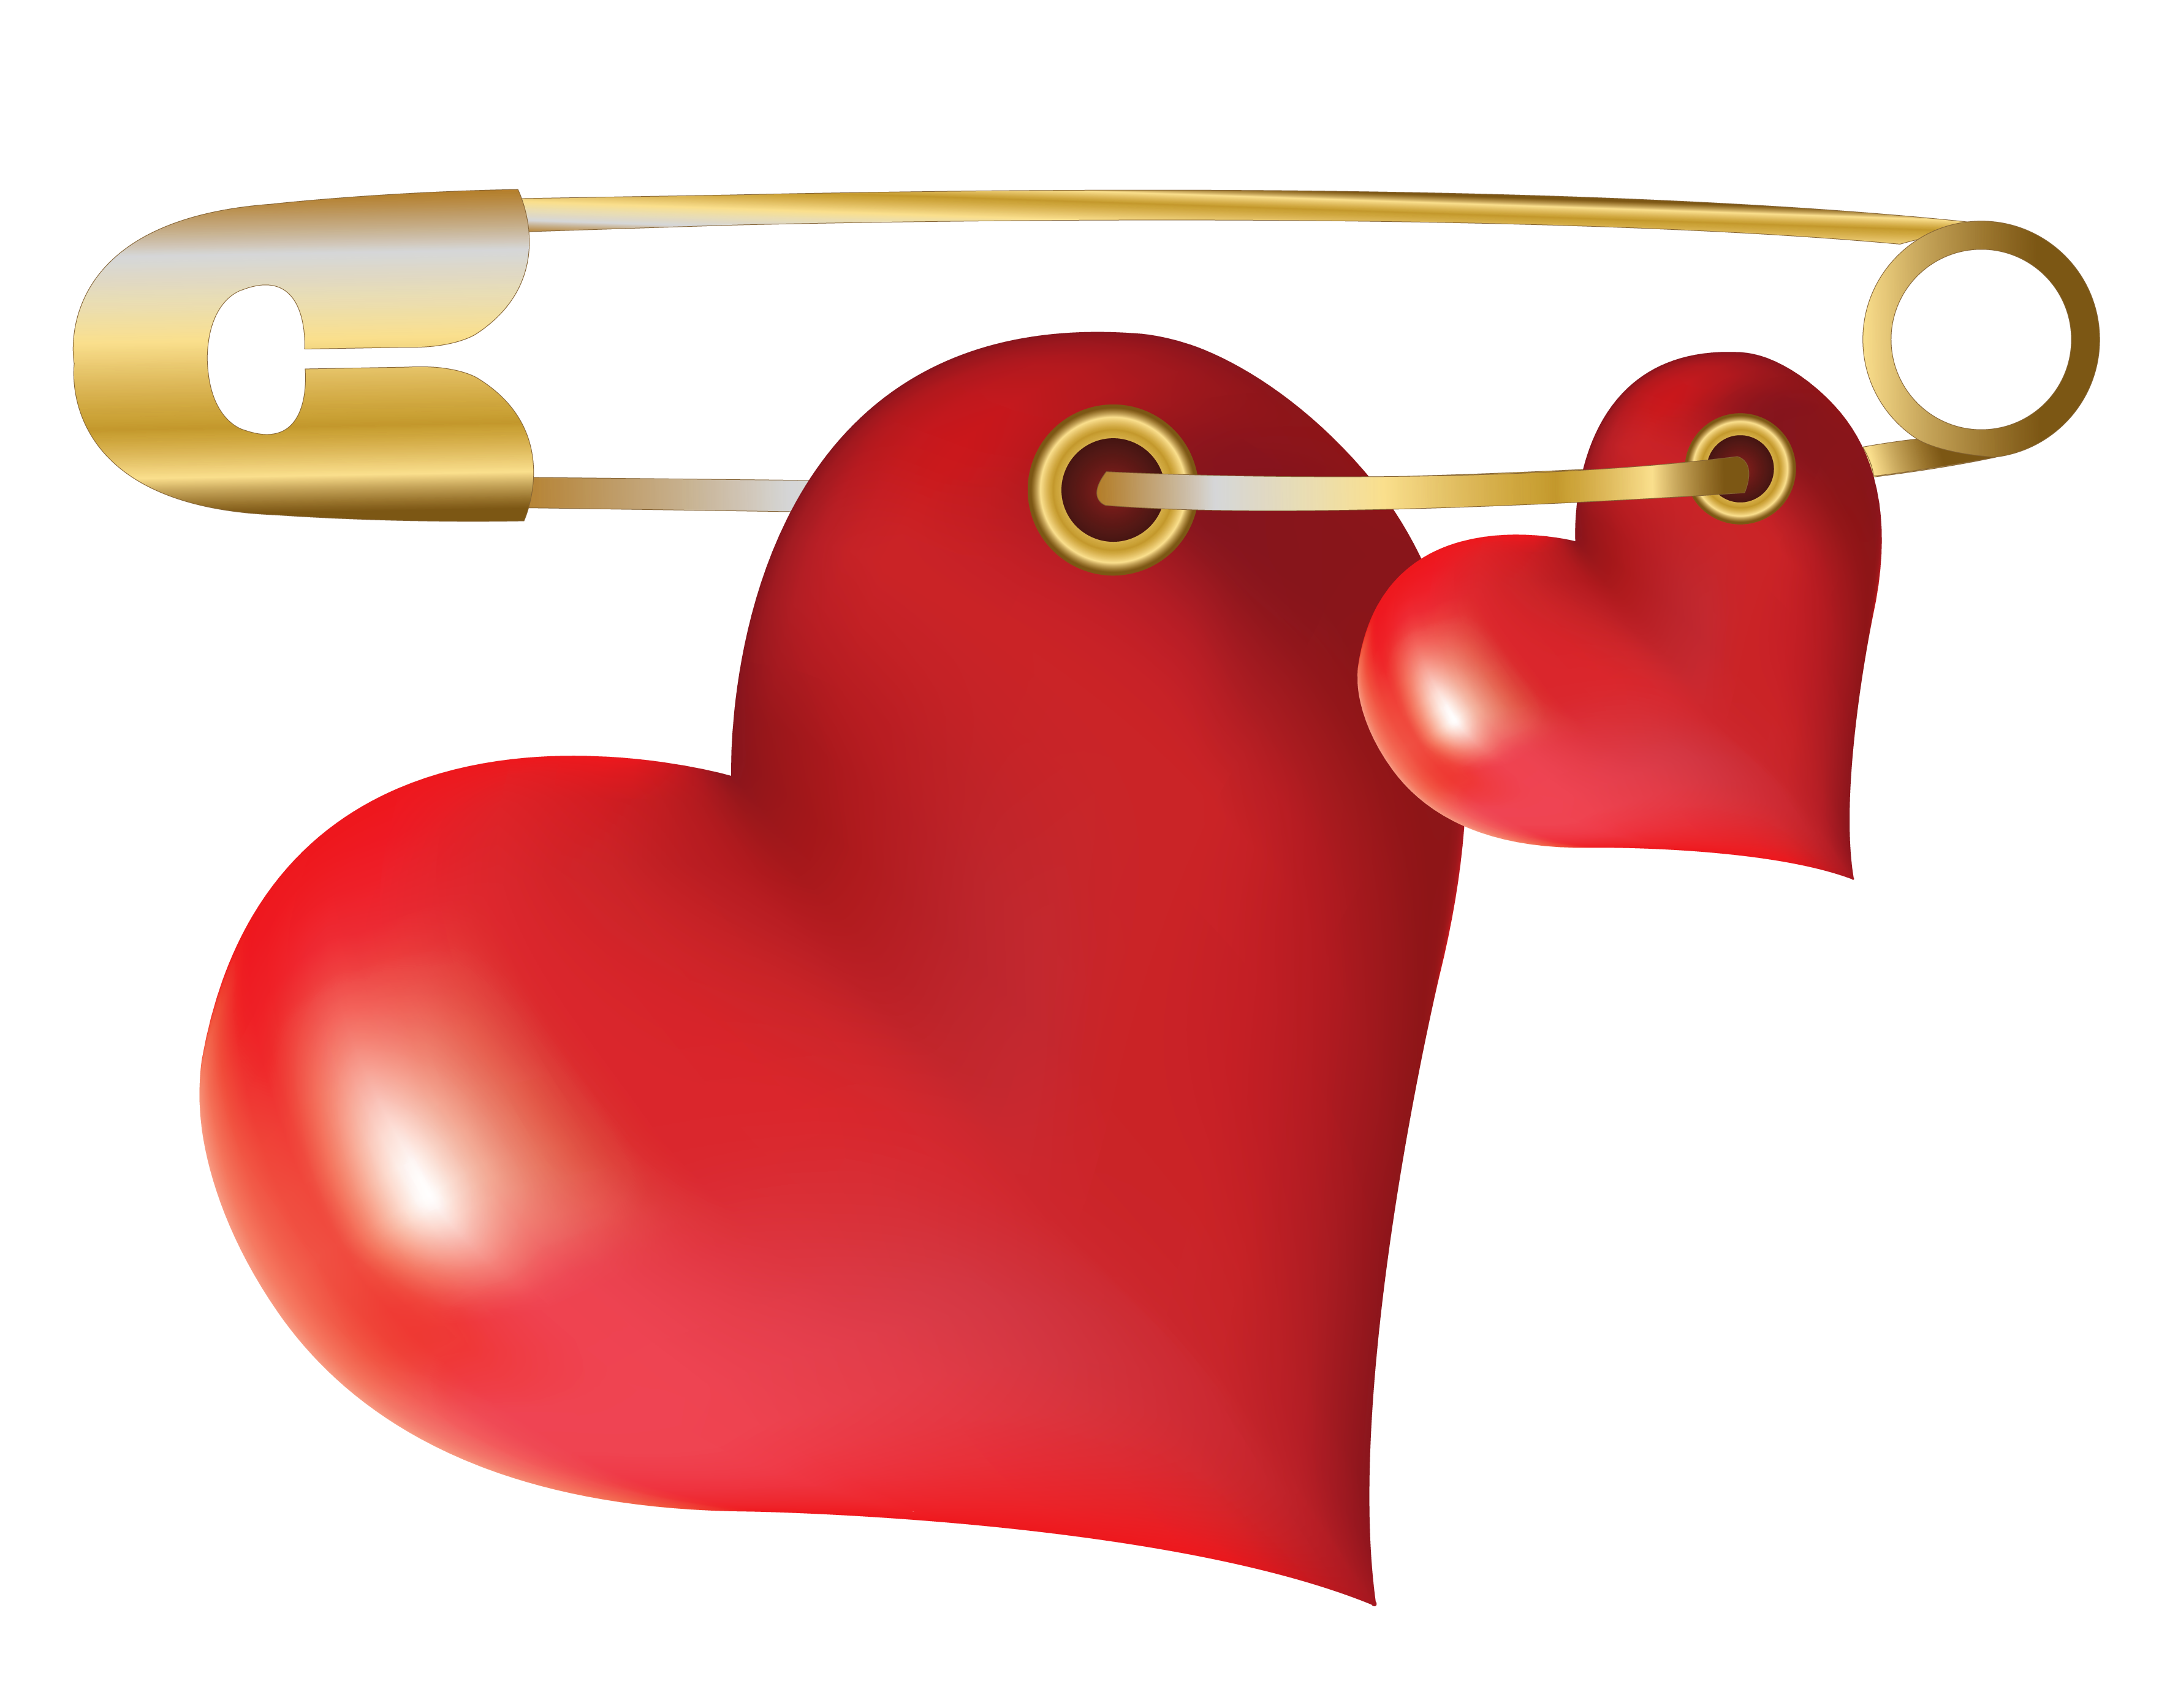 Safety pin clipart png. Hearts with gallery yopriceville